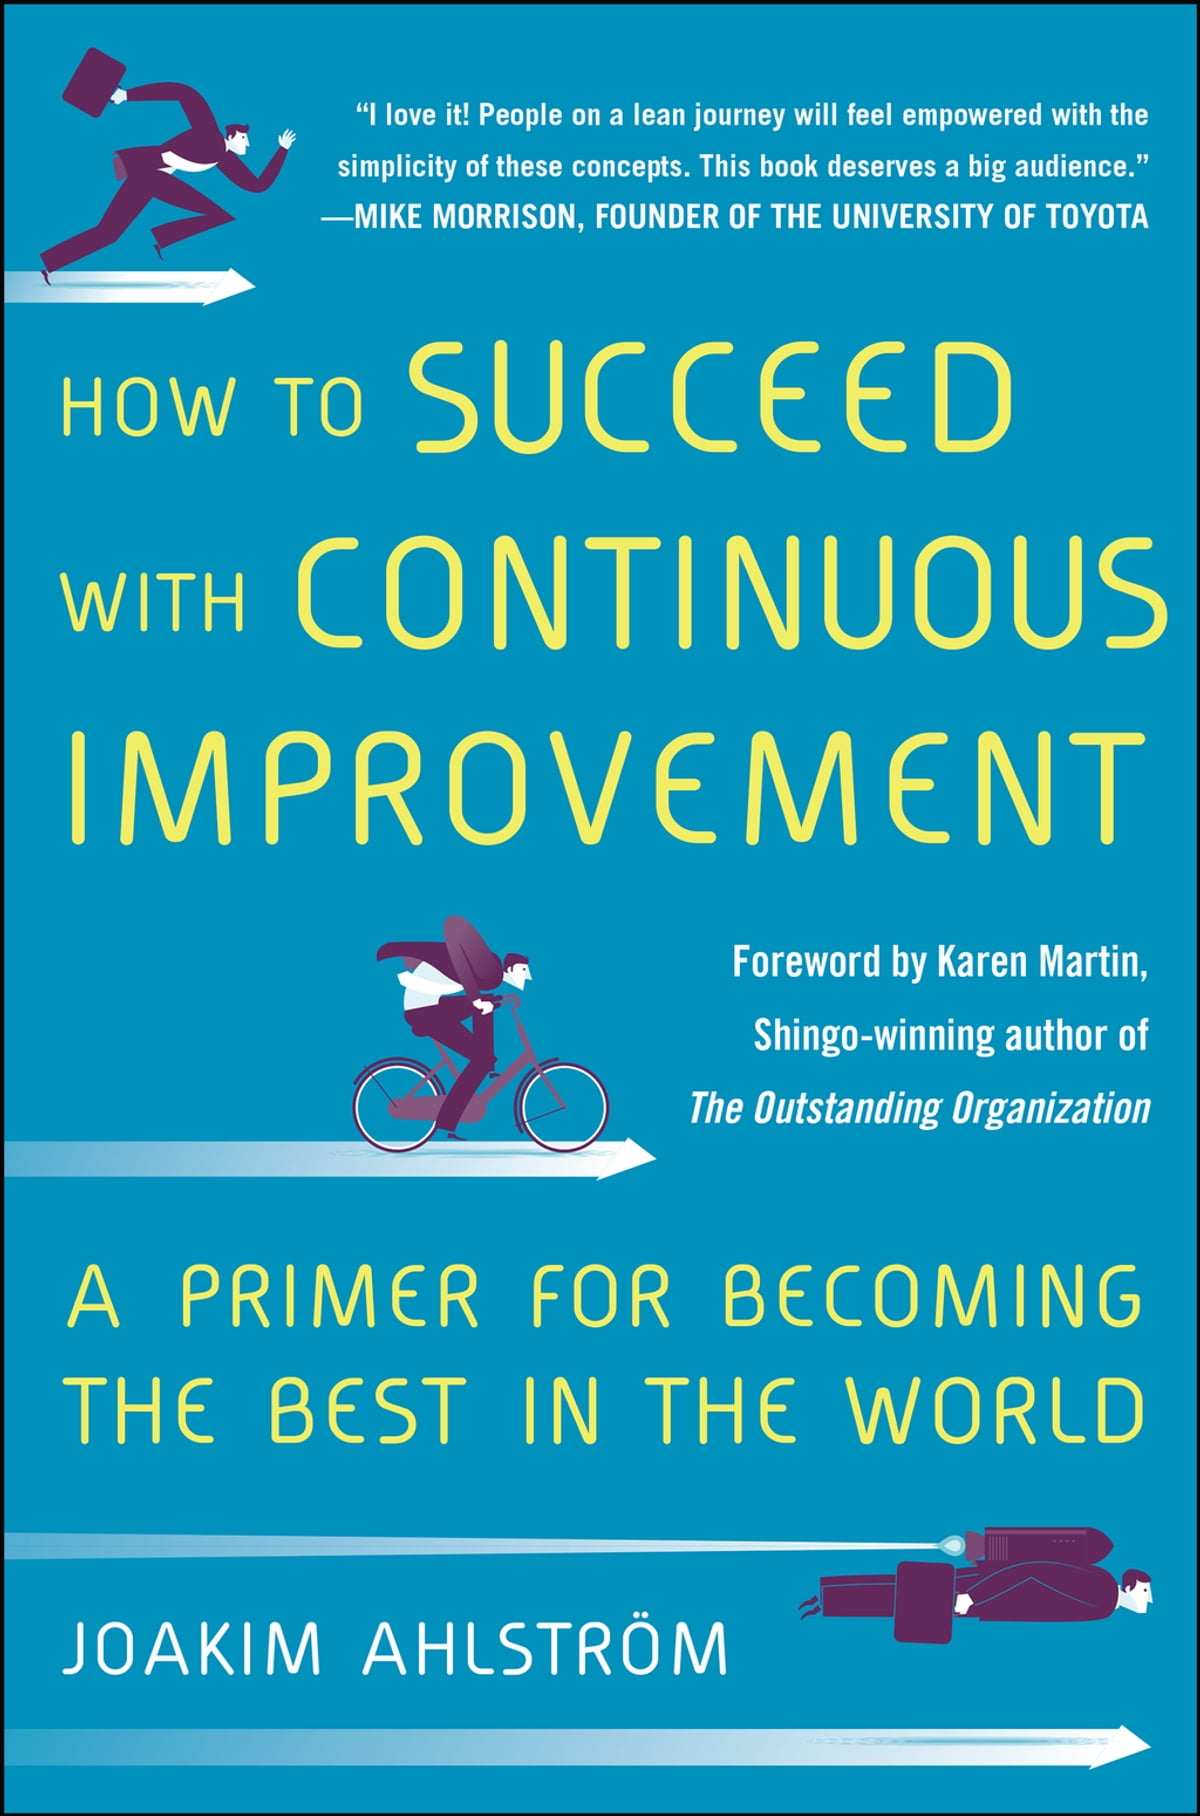 How to Succeed with Continuous Improvement: A Primer for Becoming the Best  in the World eBook by Joakim Ahlstrom - 9780071835244 | Rakuten Kobo